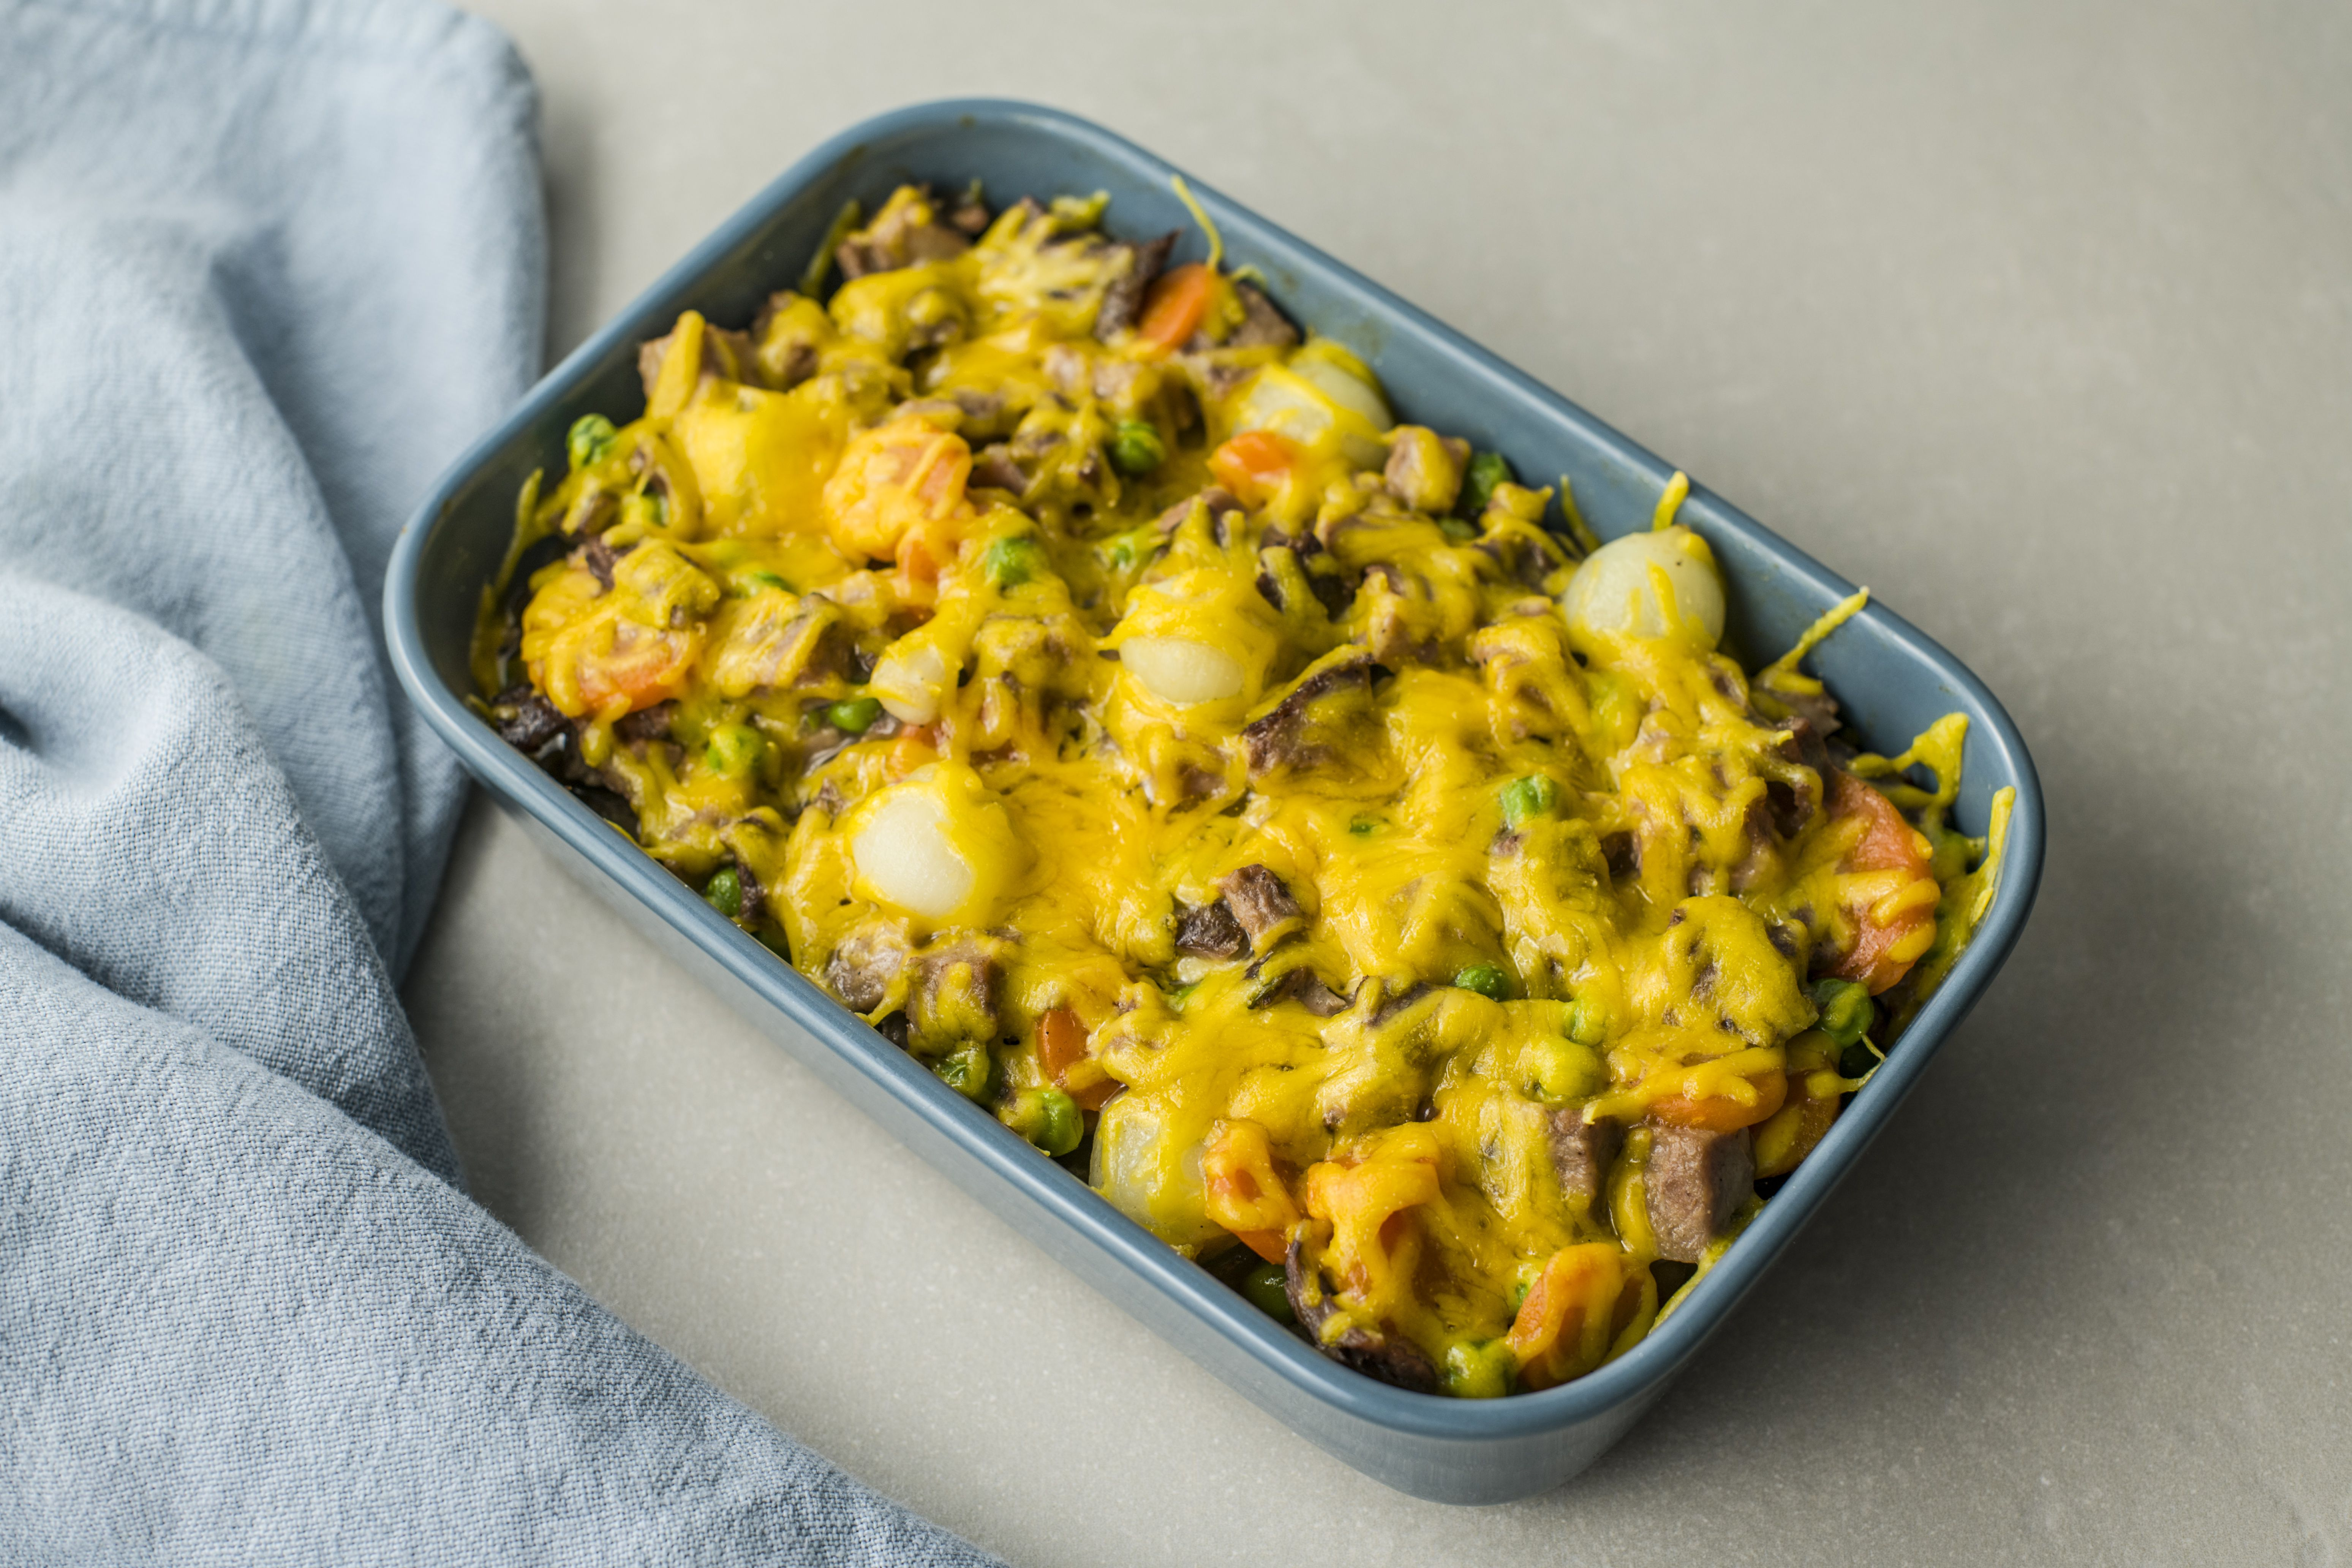 Baked roast beef casserole with vegetables and cheese